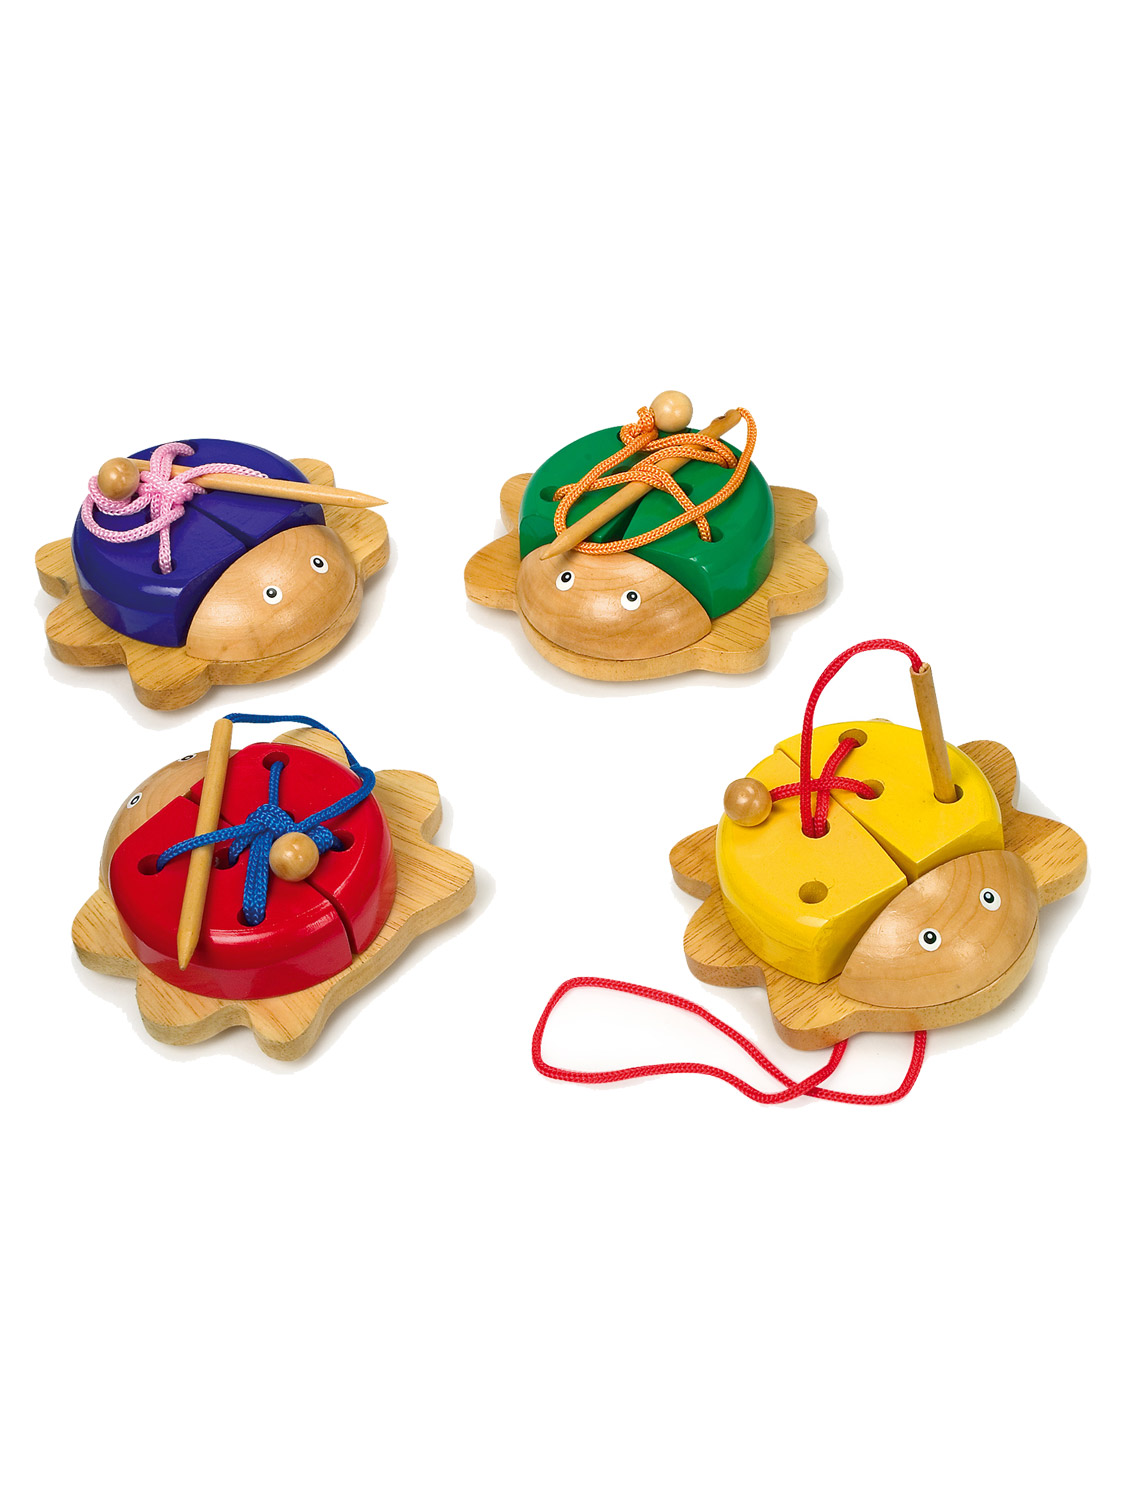 Wooden Threading Toy Educational Lacing Motor Skills ...